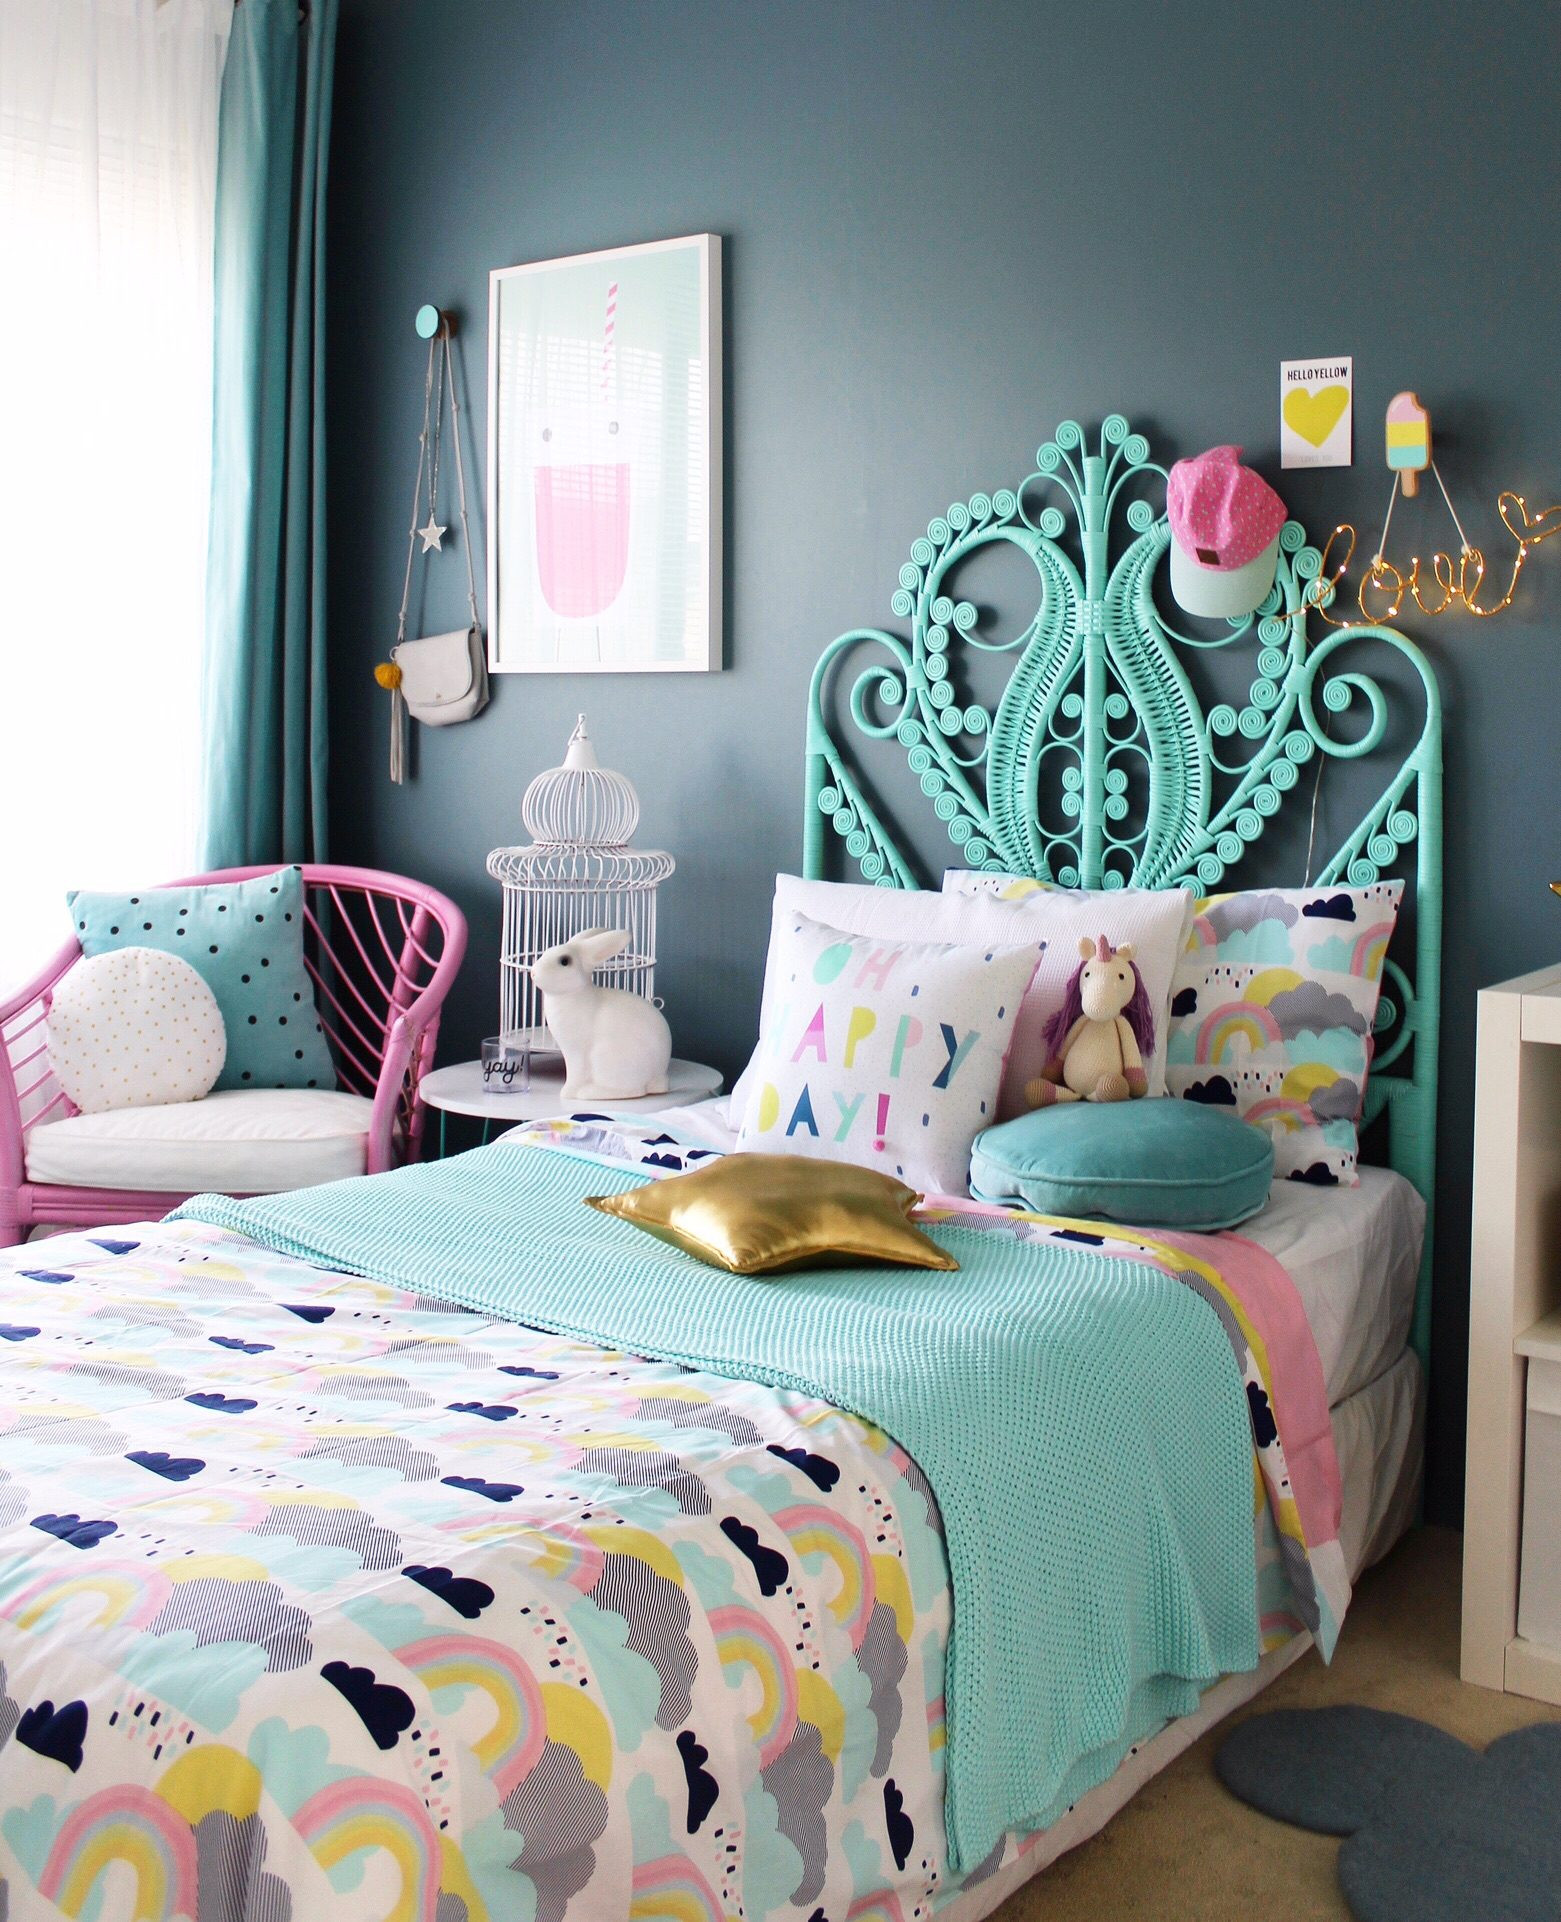 Best ideas about Kids Room Ideas . Save or Pin Way Back Wednesday Kids Room Ideas four cheeky monkeys Now.